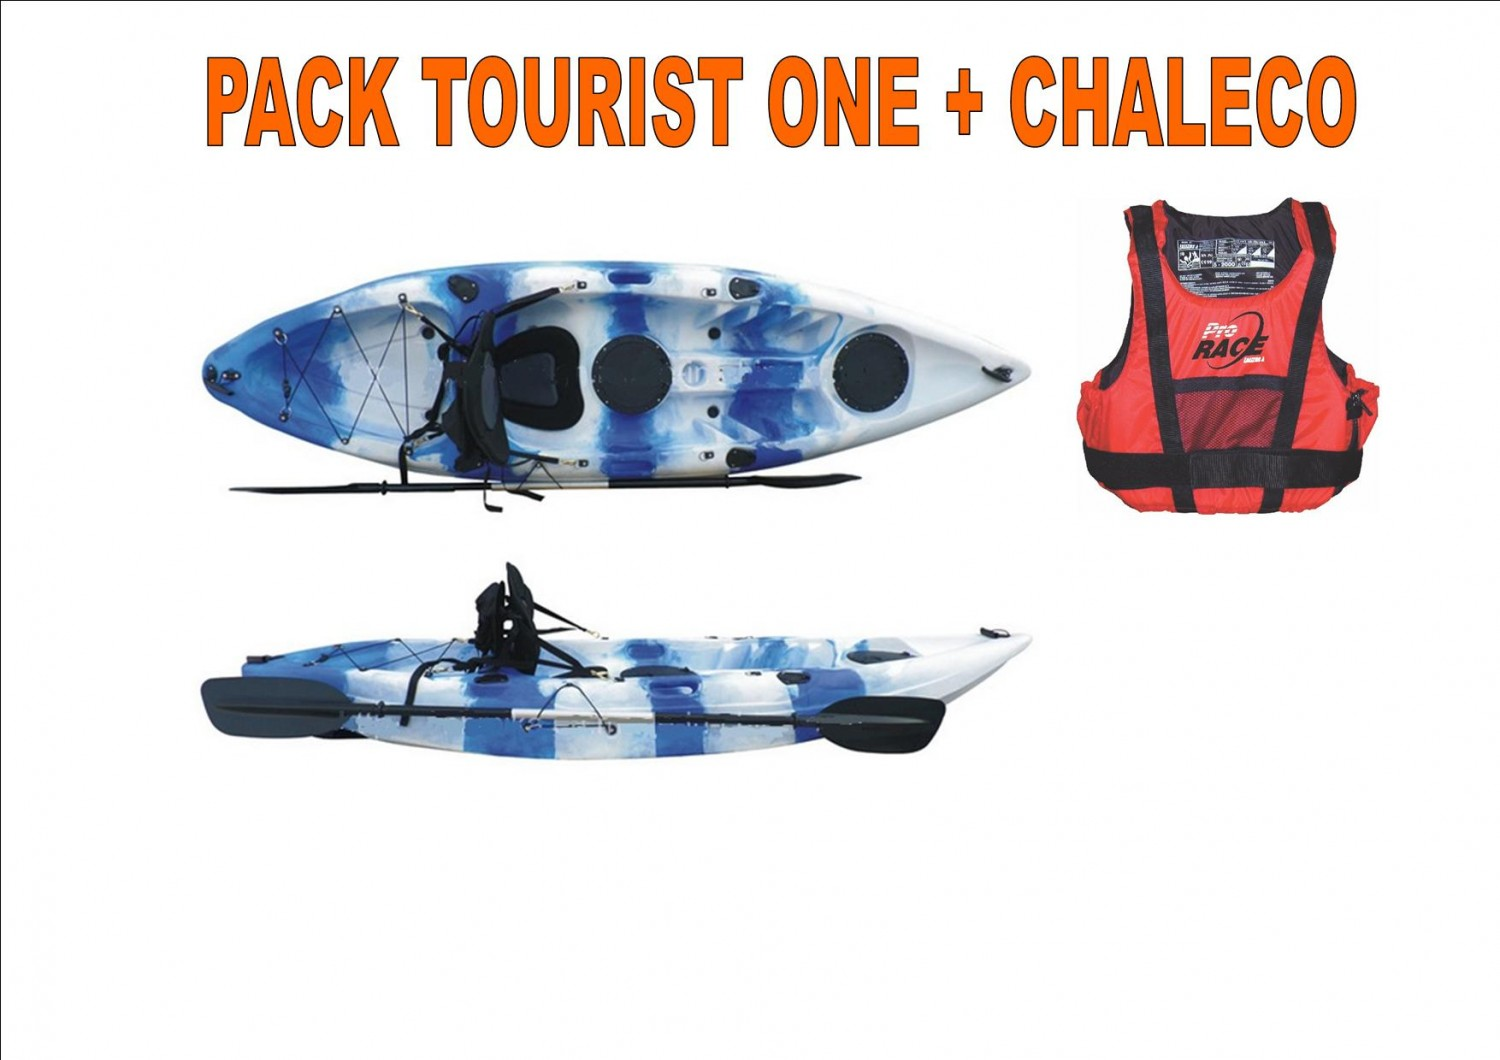 Kayak TOURIST ONE + Pack Con chaleco